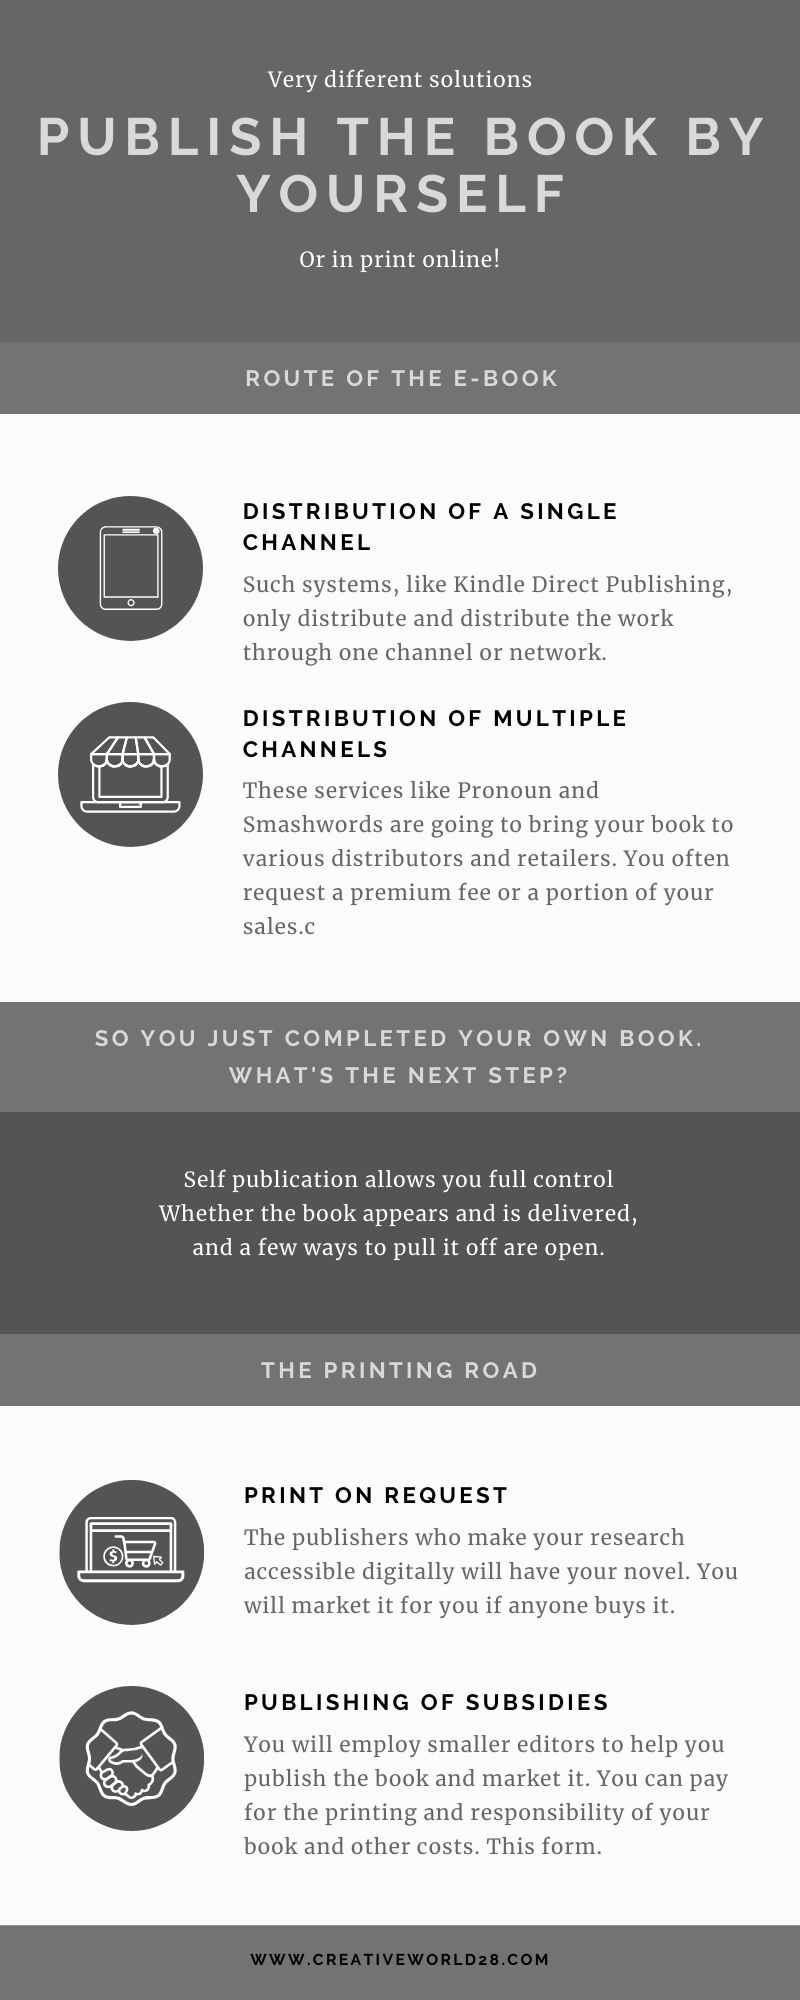 Publish the Book by Yourself #infographic